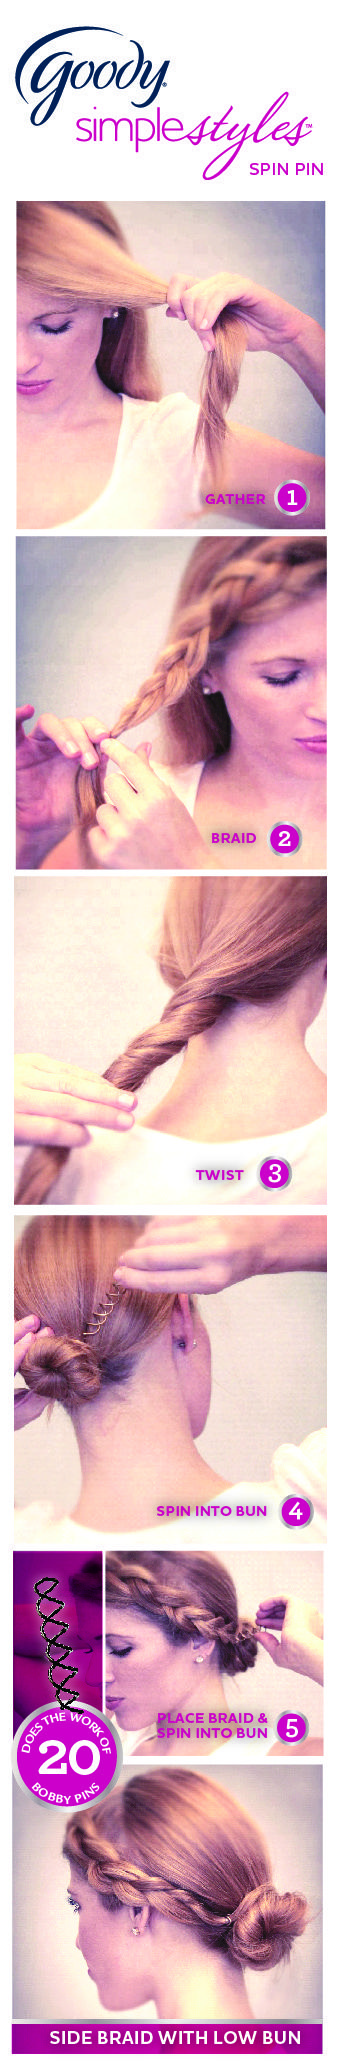 For a different look, add a side braid to your bun.  Easily done with the Goody Spin Pin.